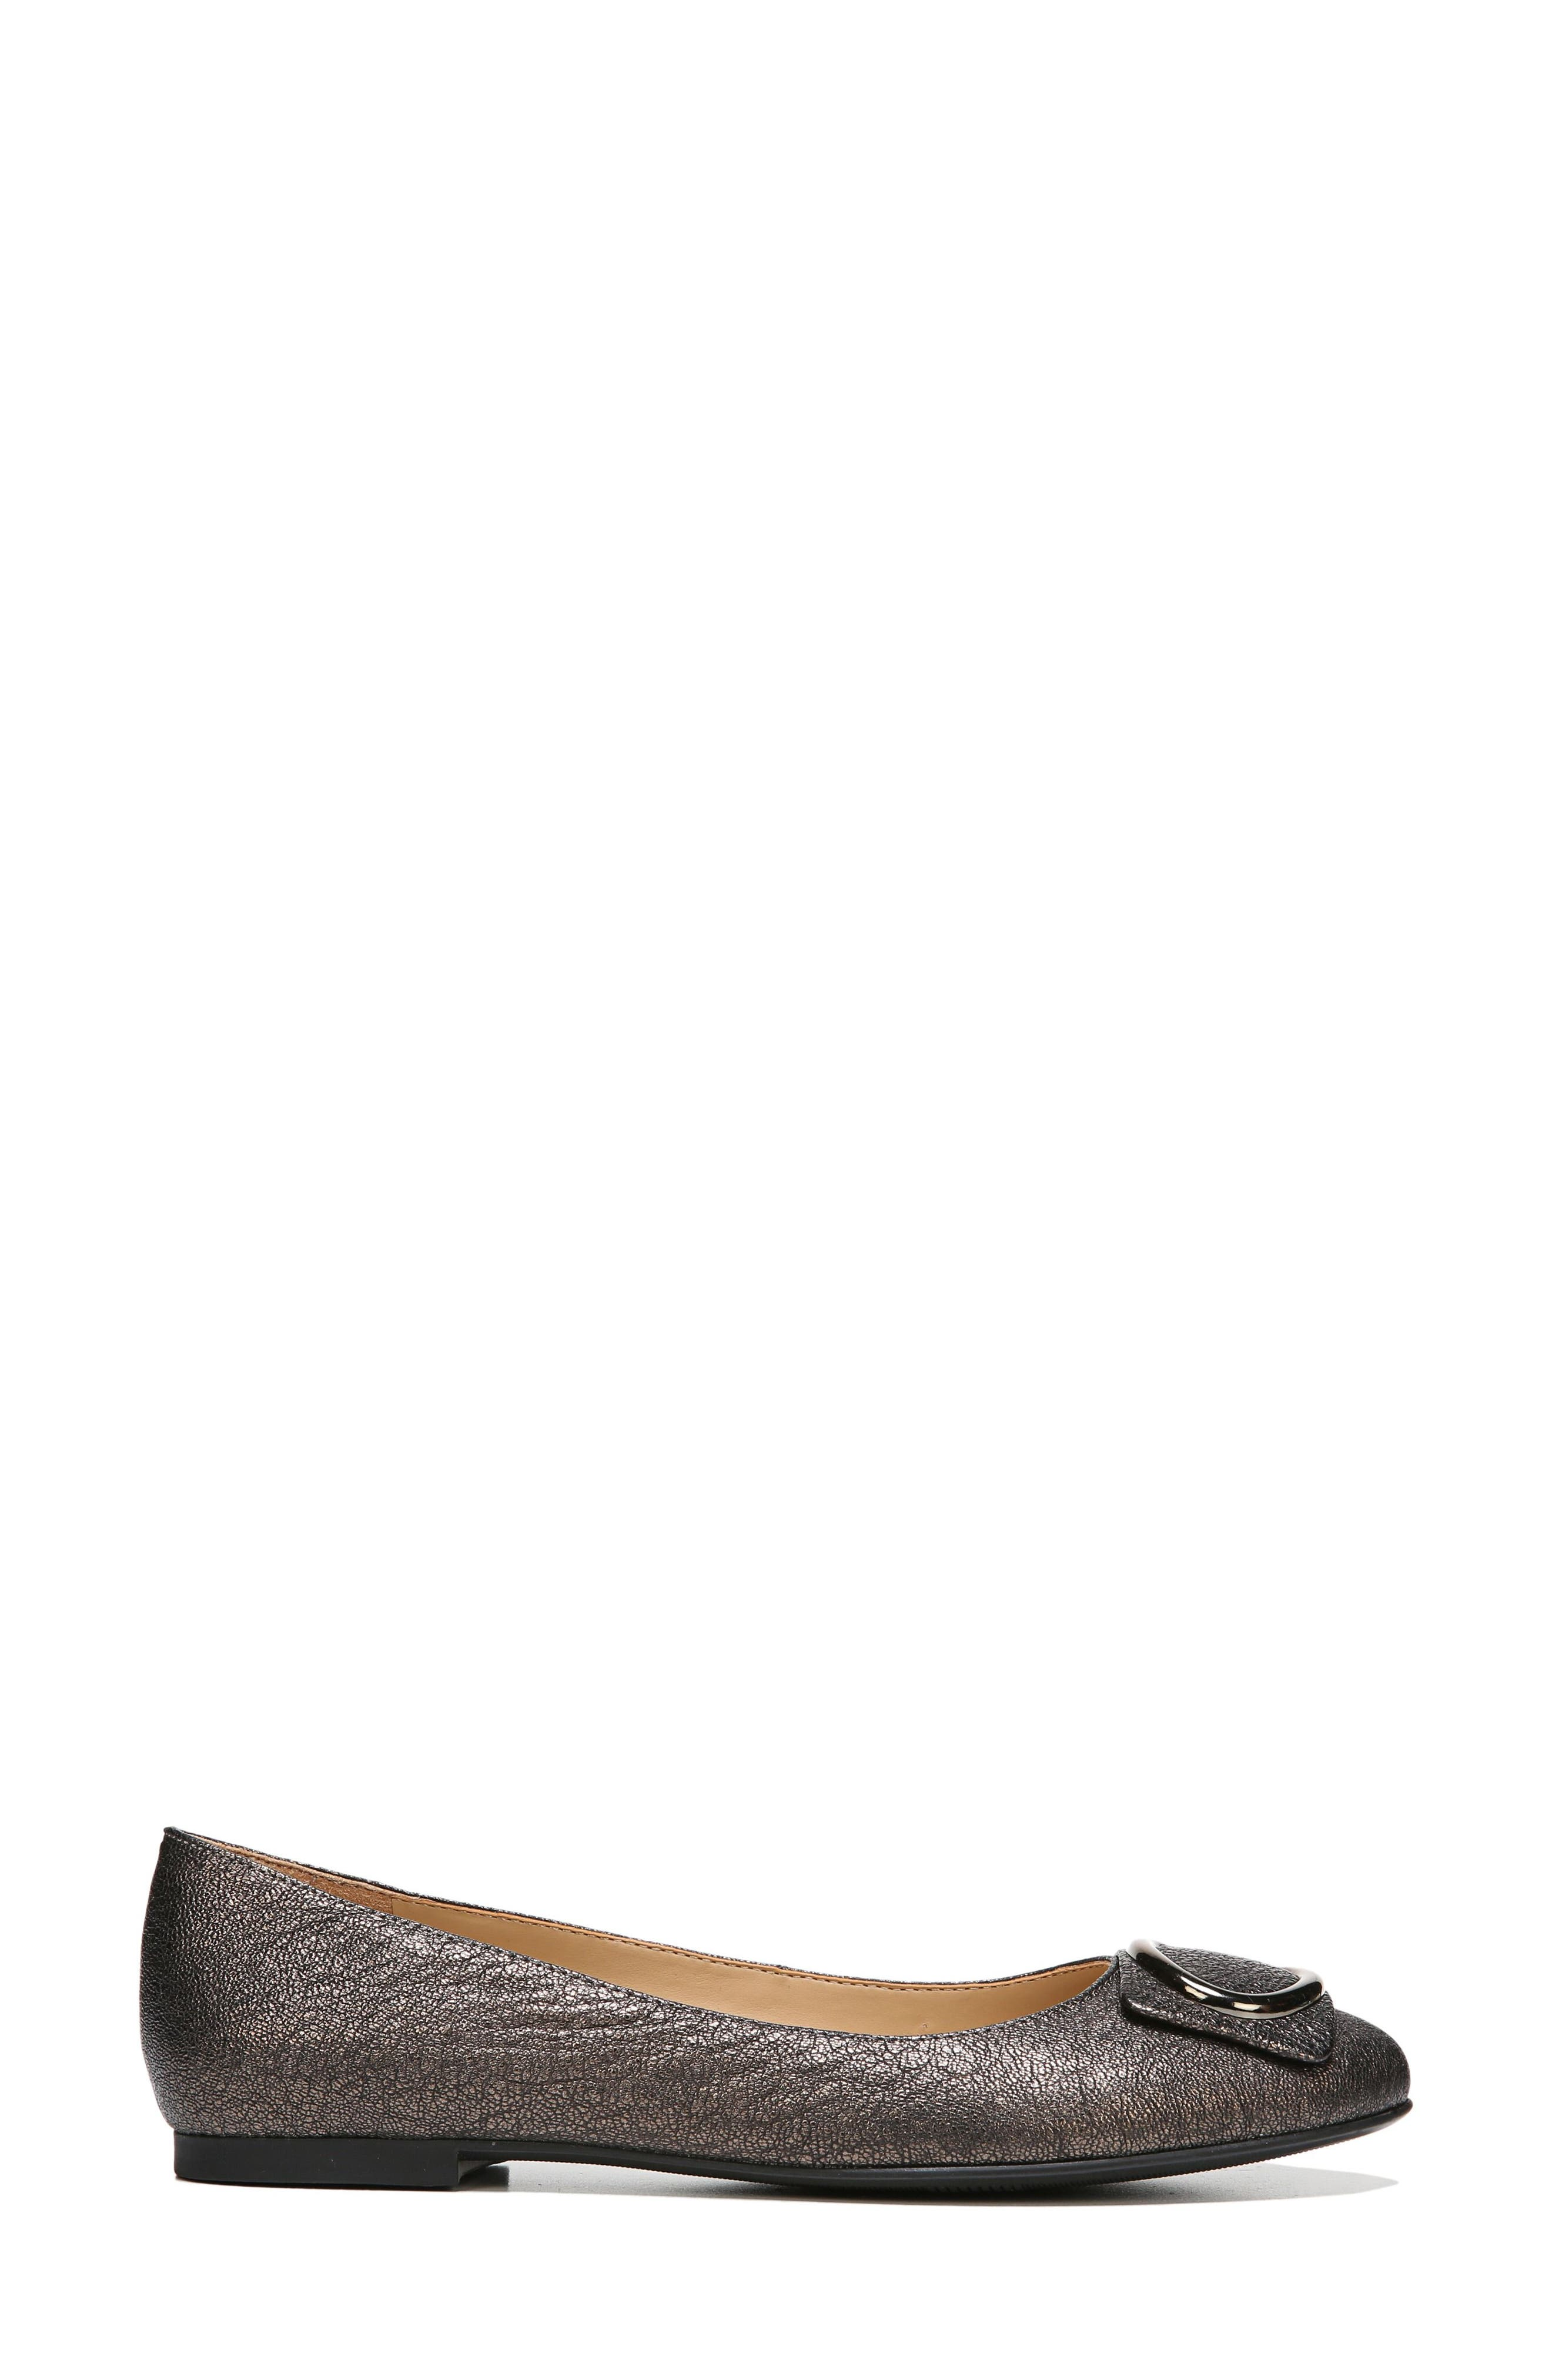 Geona Flat,                             Alternate thumbnail 3, color,                             BRONZE LEATHER